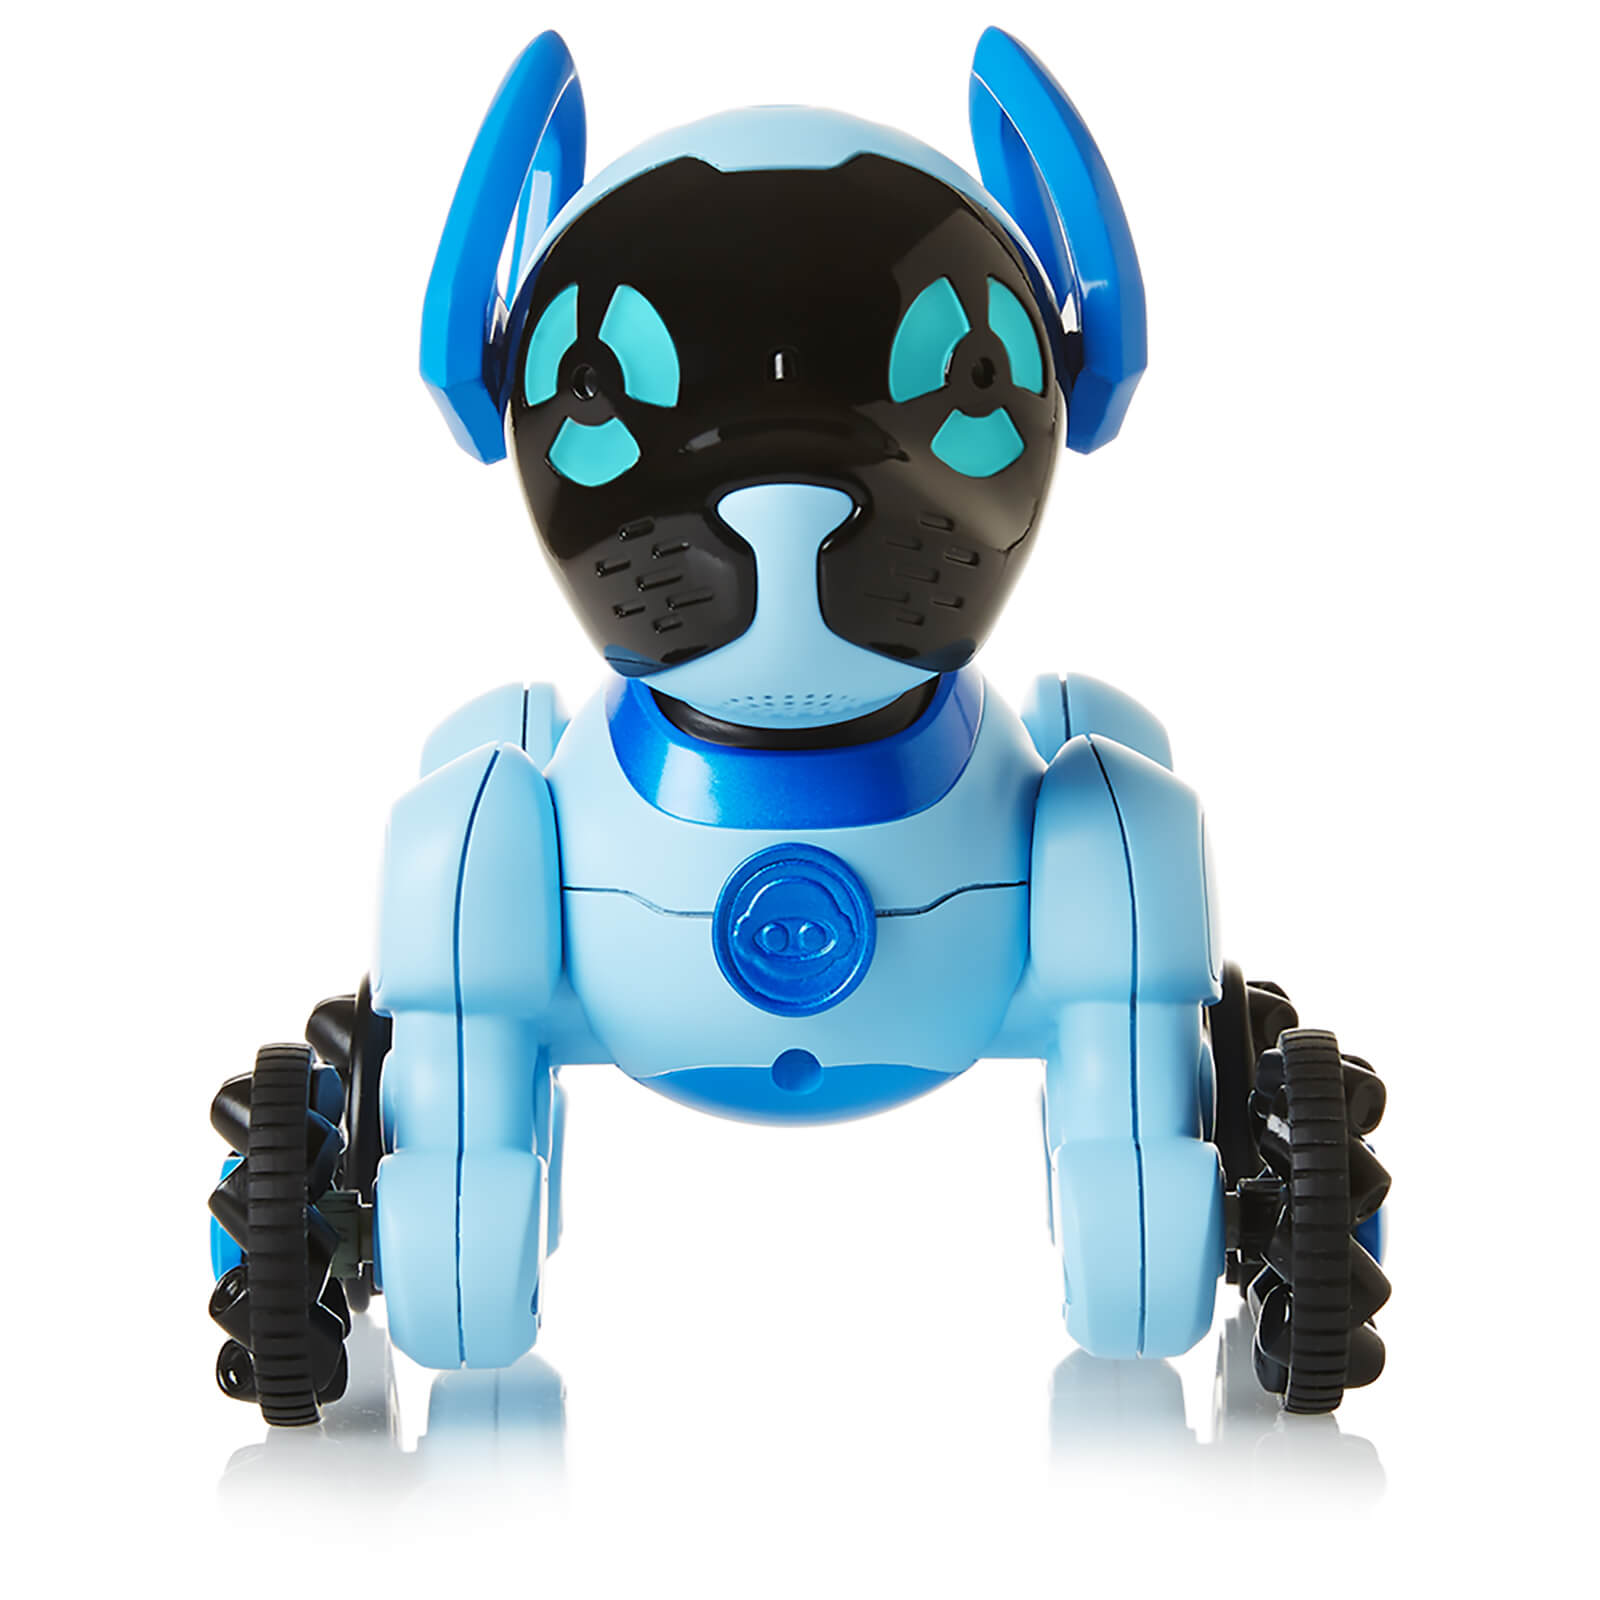 WowWee Chippies Robotic Pet - Chipper